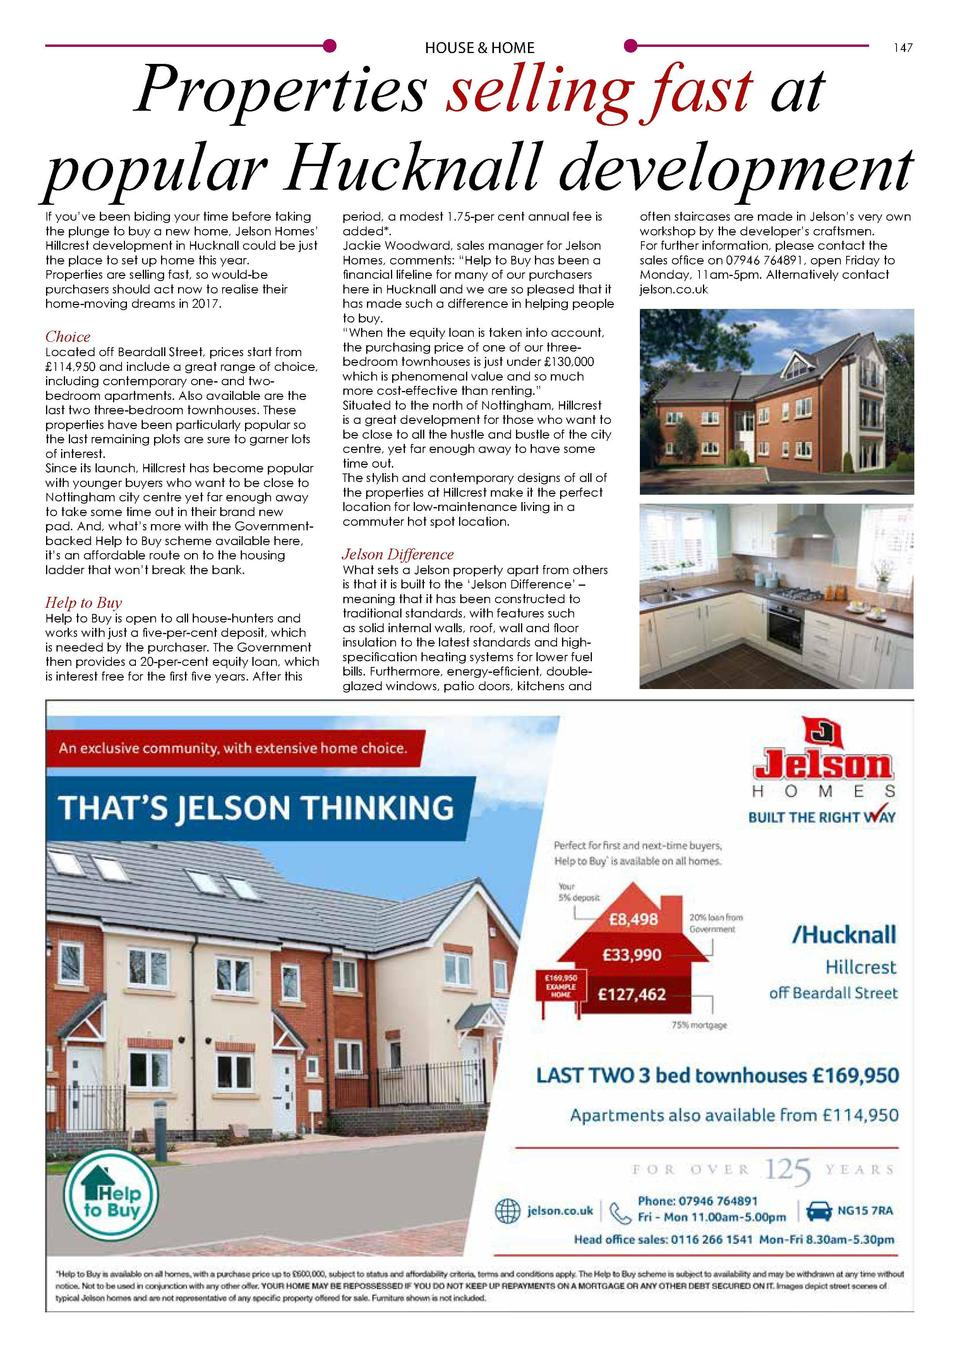 146  HOUSE   HOME  HOUSE   HOME  Properties selling fast at popular Hucknall development  If you   ve been biding your tim...